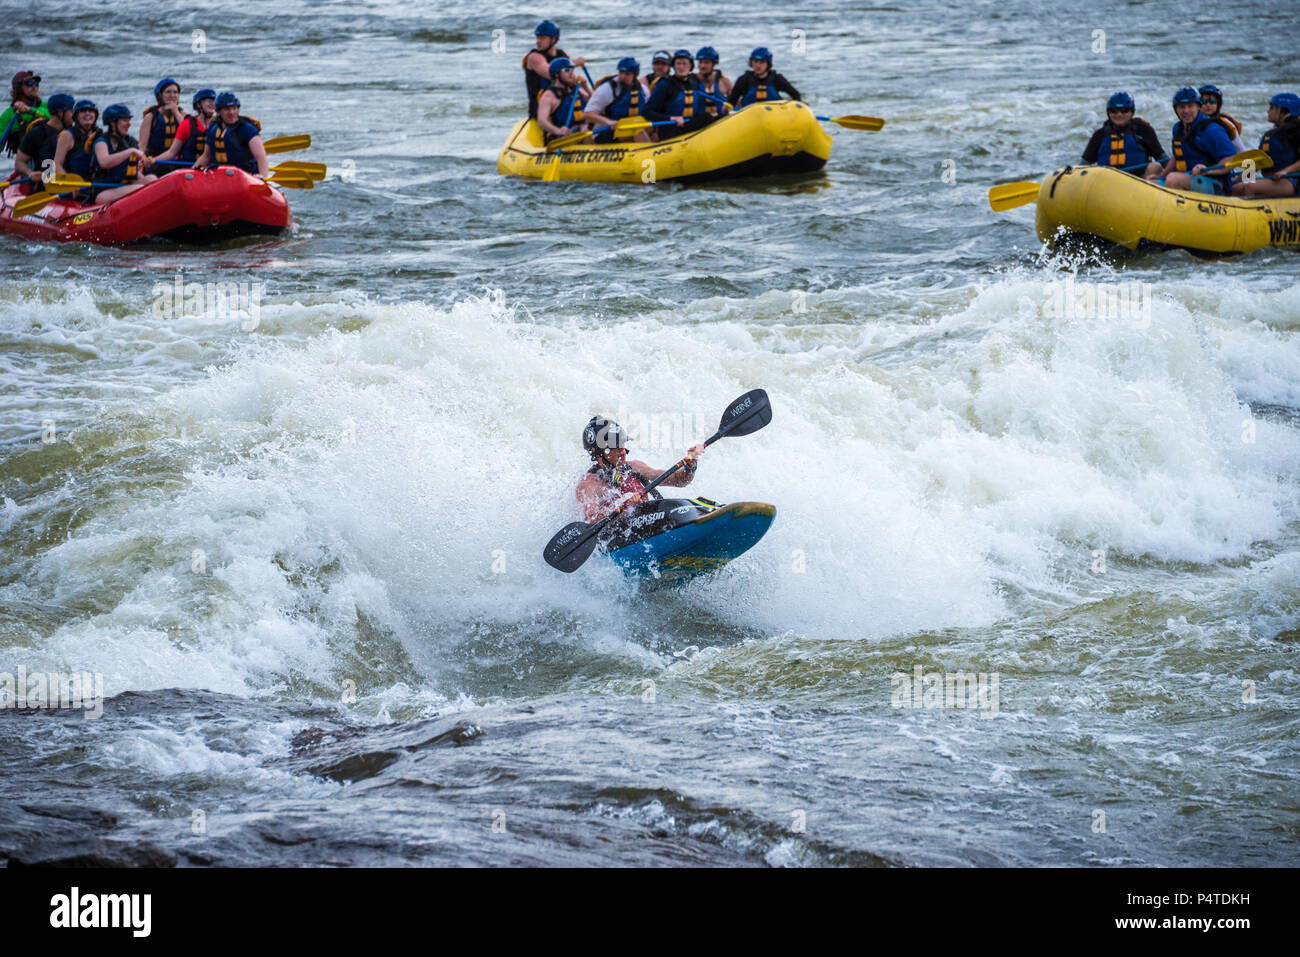 Whitewater rafting and freestyle kayaking on the Chattahoochee River at Columbus, Georgia. (USA) - Stock Image